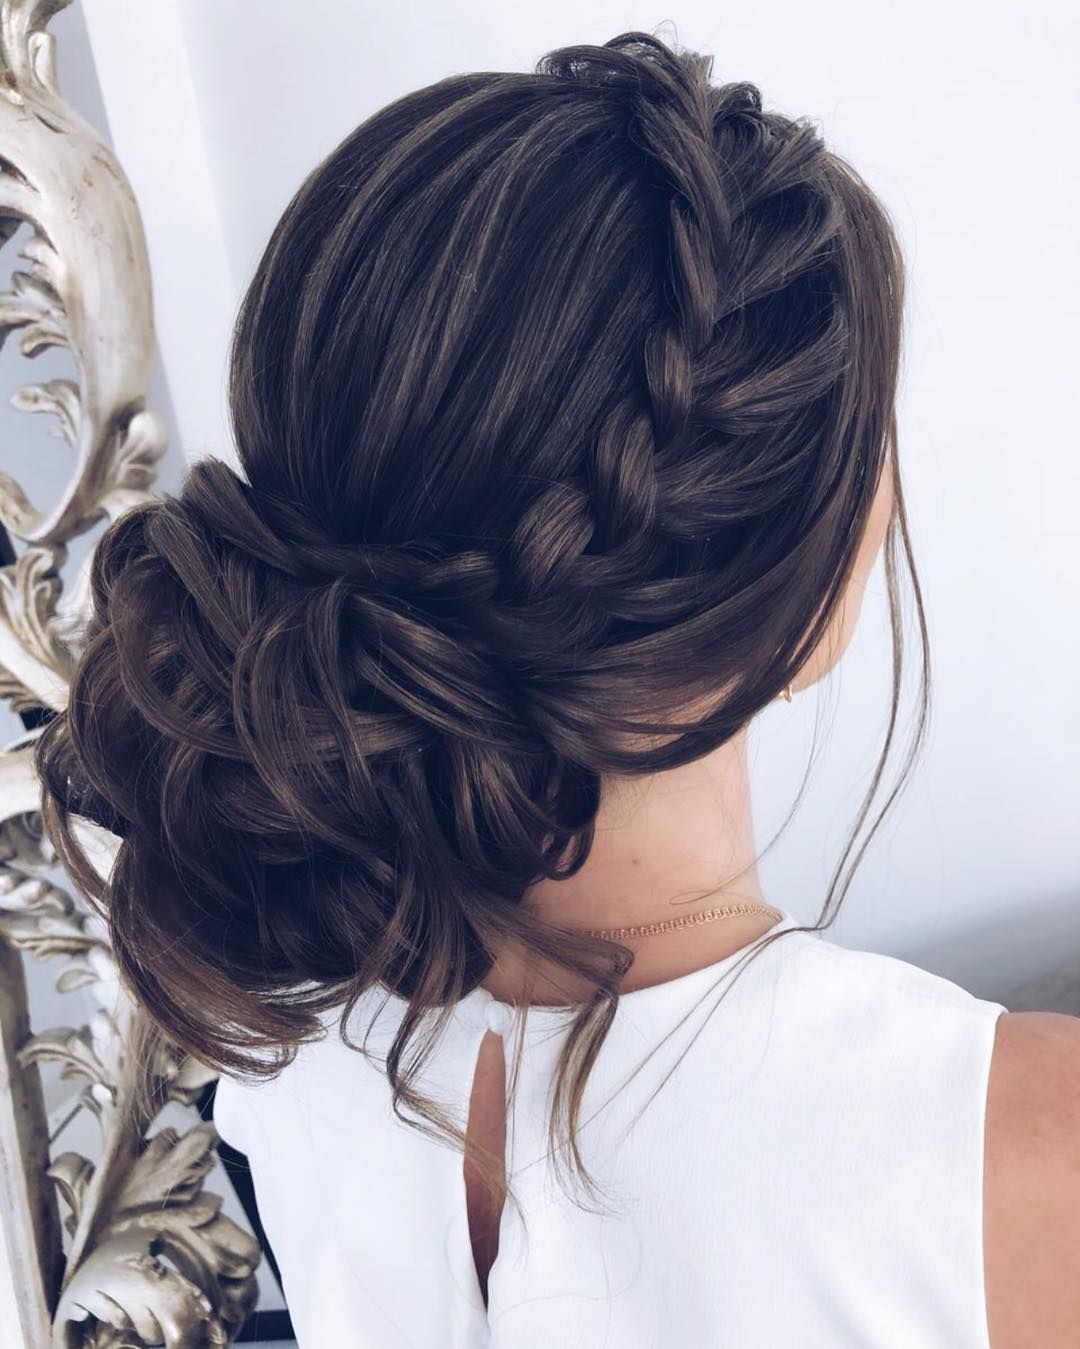 34 Gorgeous Trendy Wedding Hairstyles for Long Hair